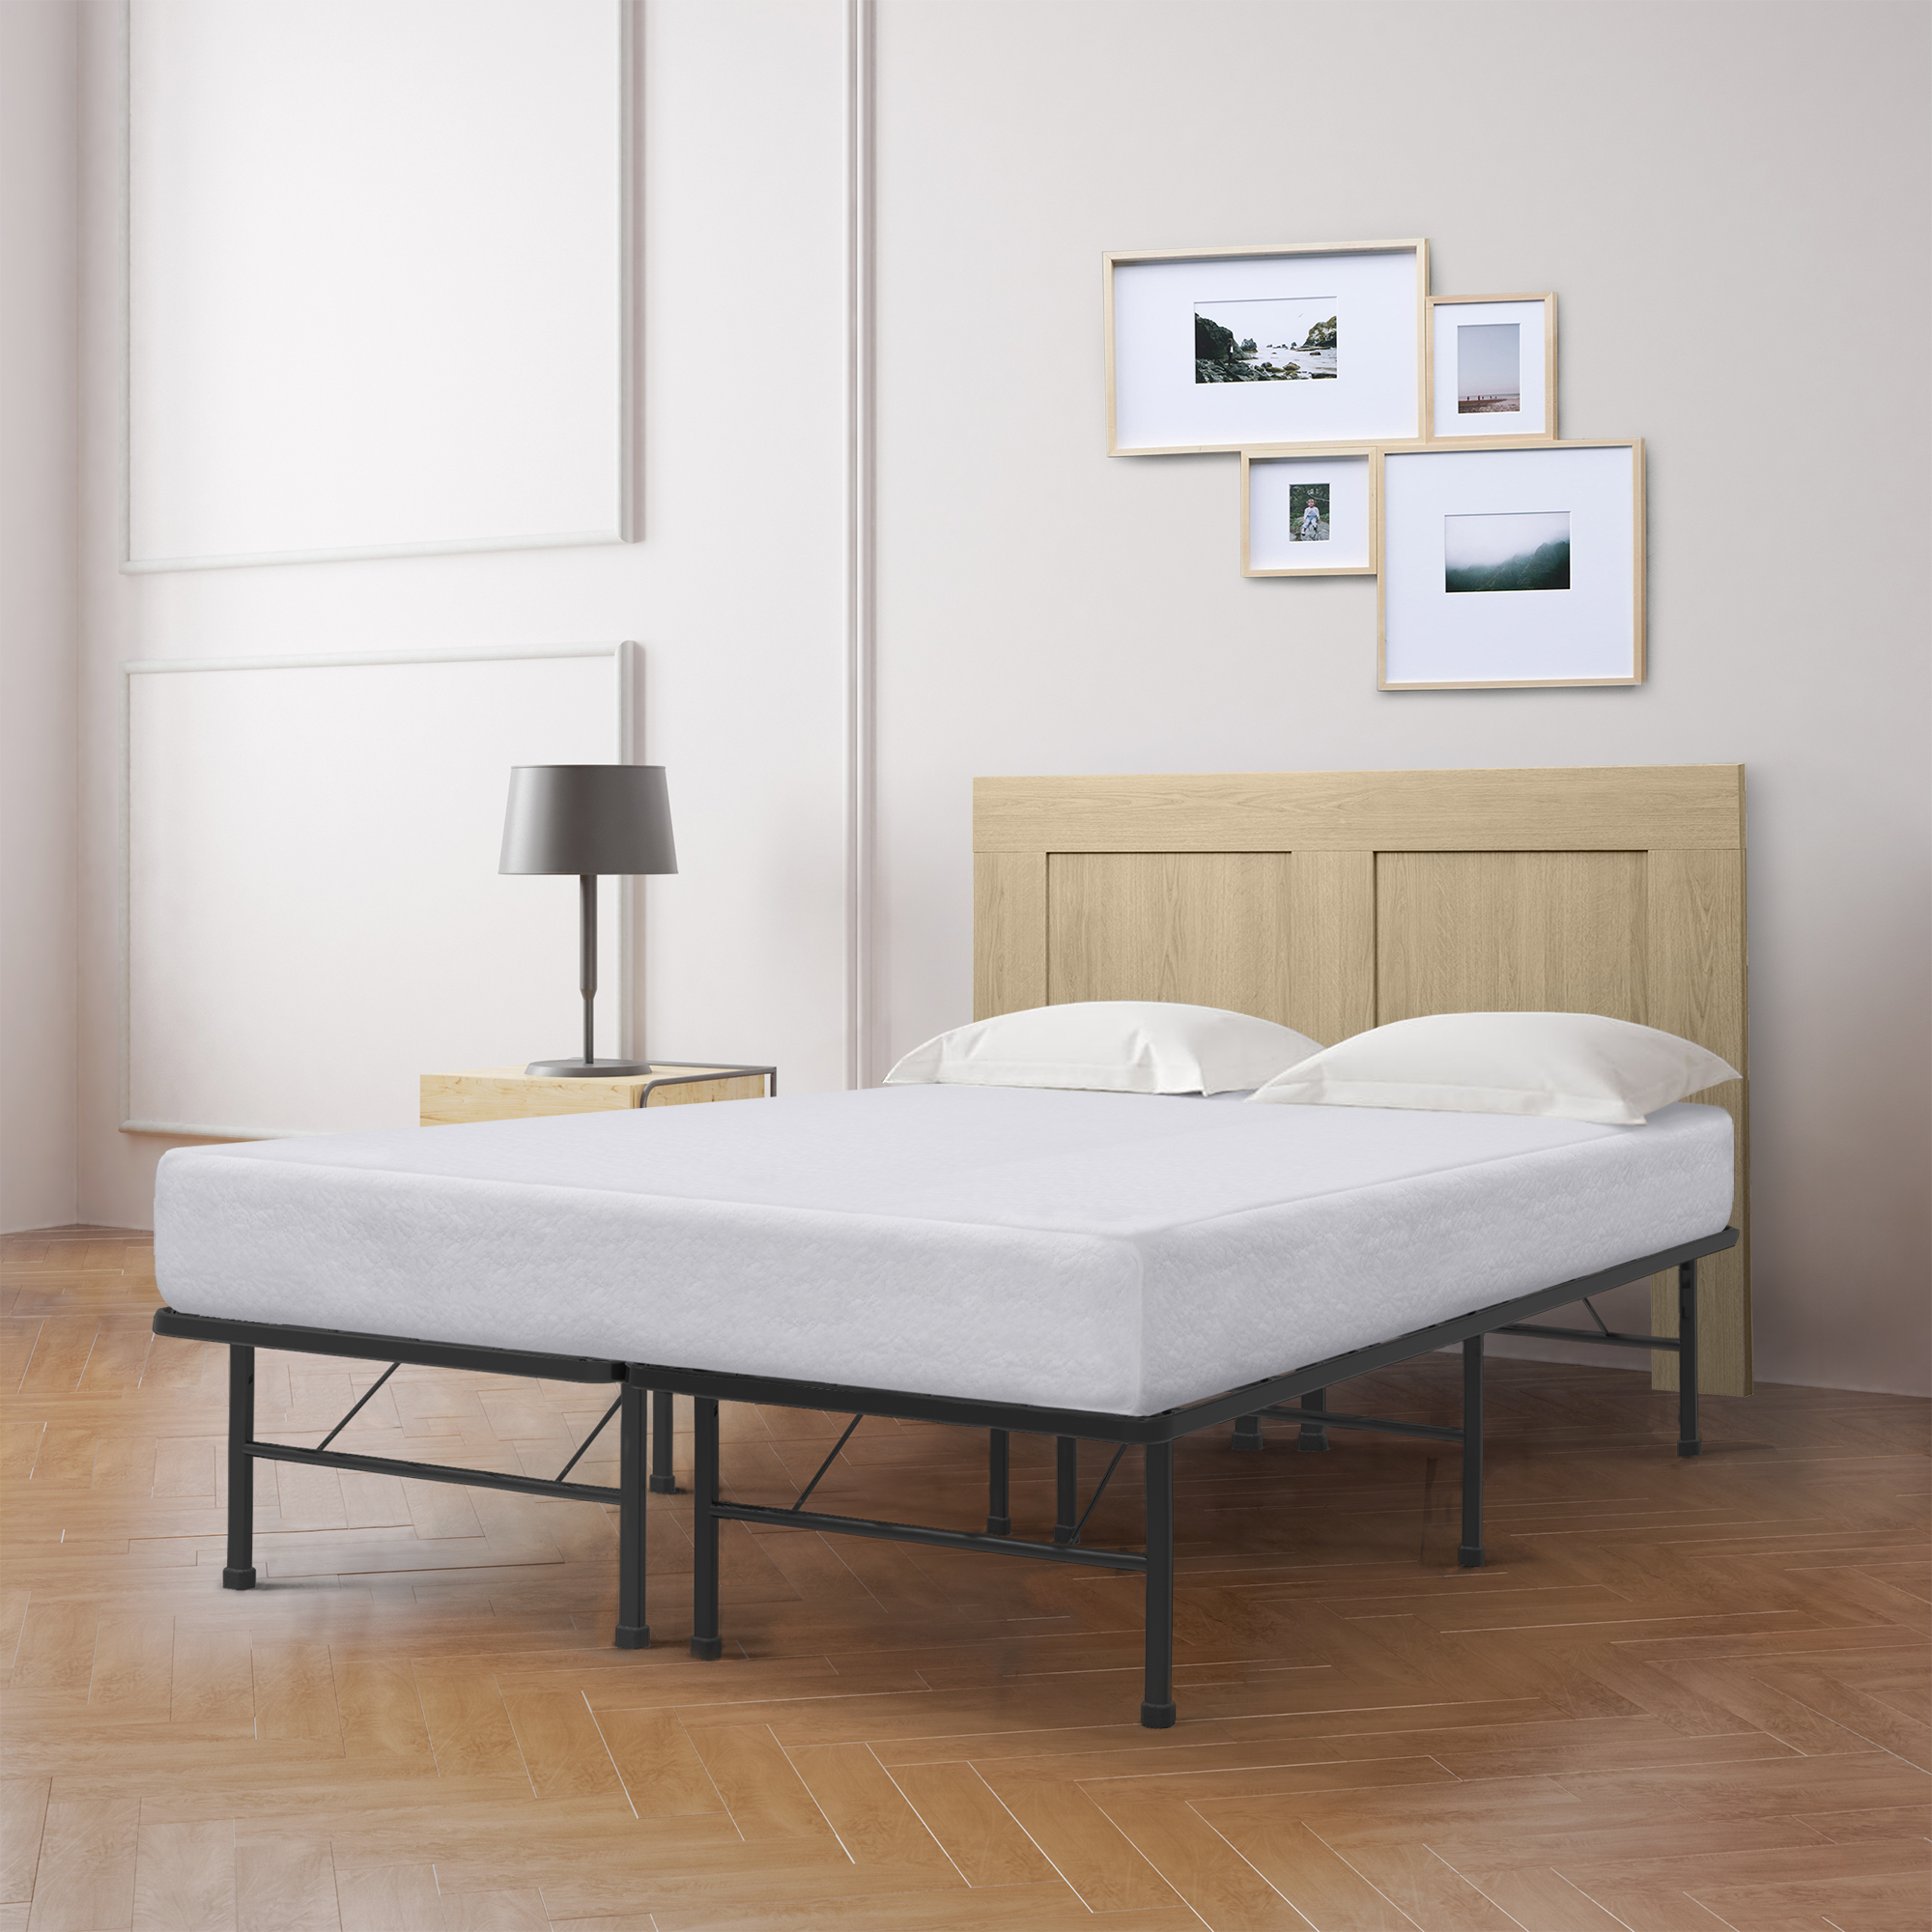 Best Price Mattress 8 Inch Memory Foam Mattress and New Innovated Platform Metal Bed Frame Set Multiple Sizes by Best Price Mattress